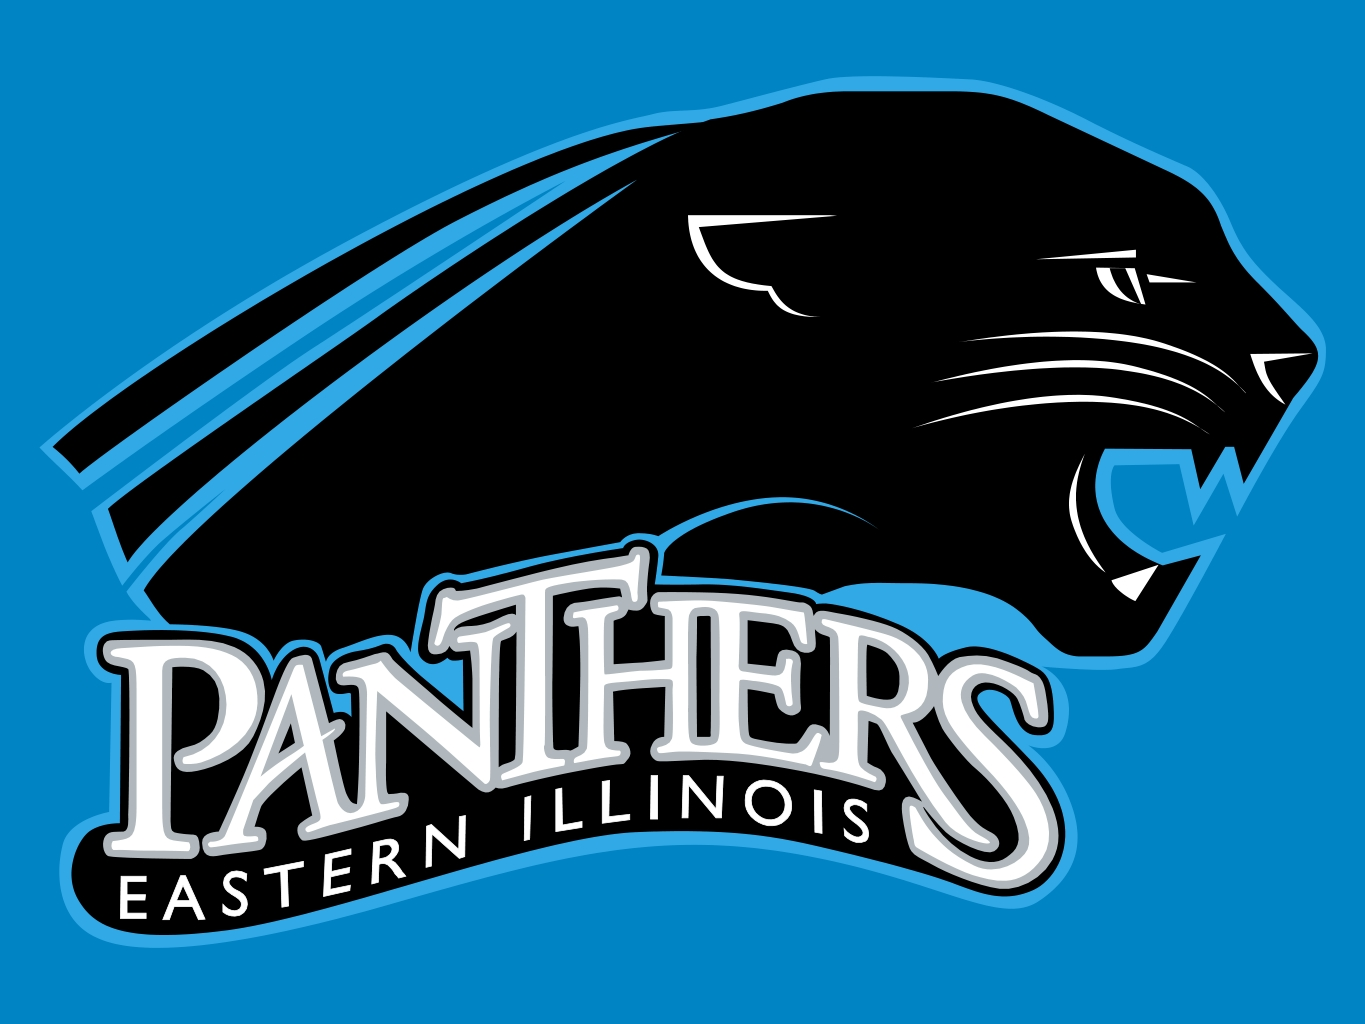 Image Eastern Illinois Panthers Jpg Ncaa Football Wiki Fandom